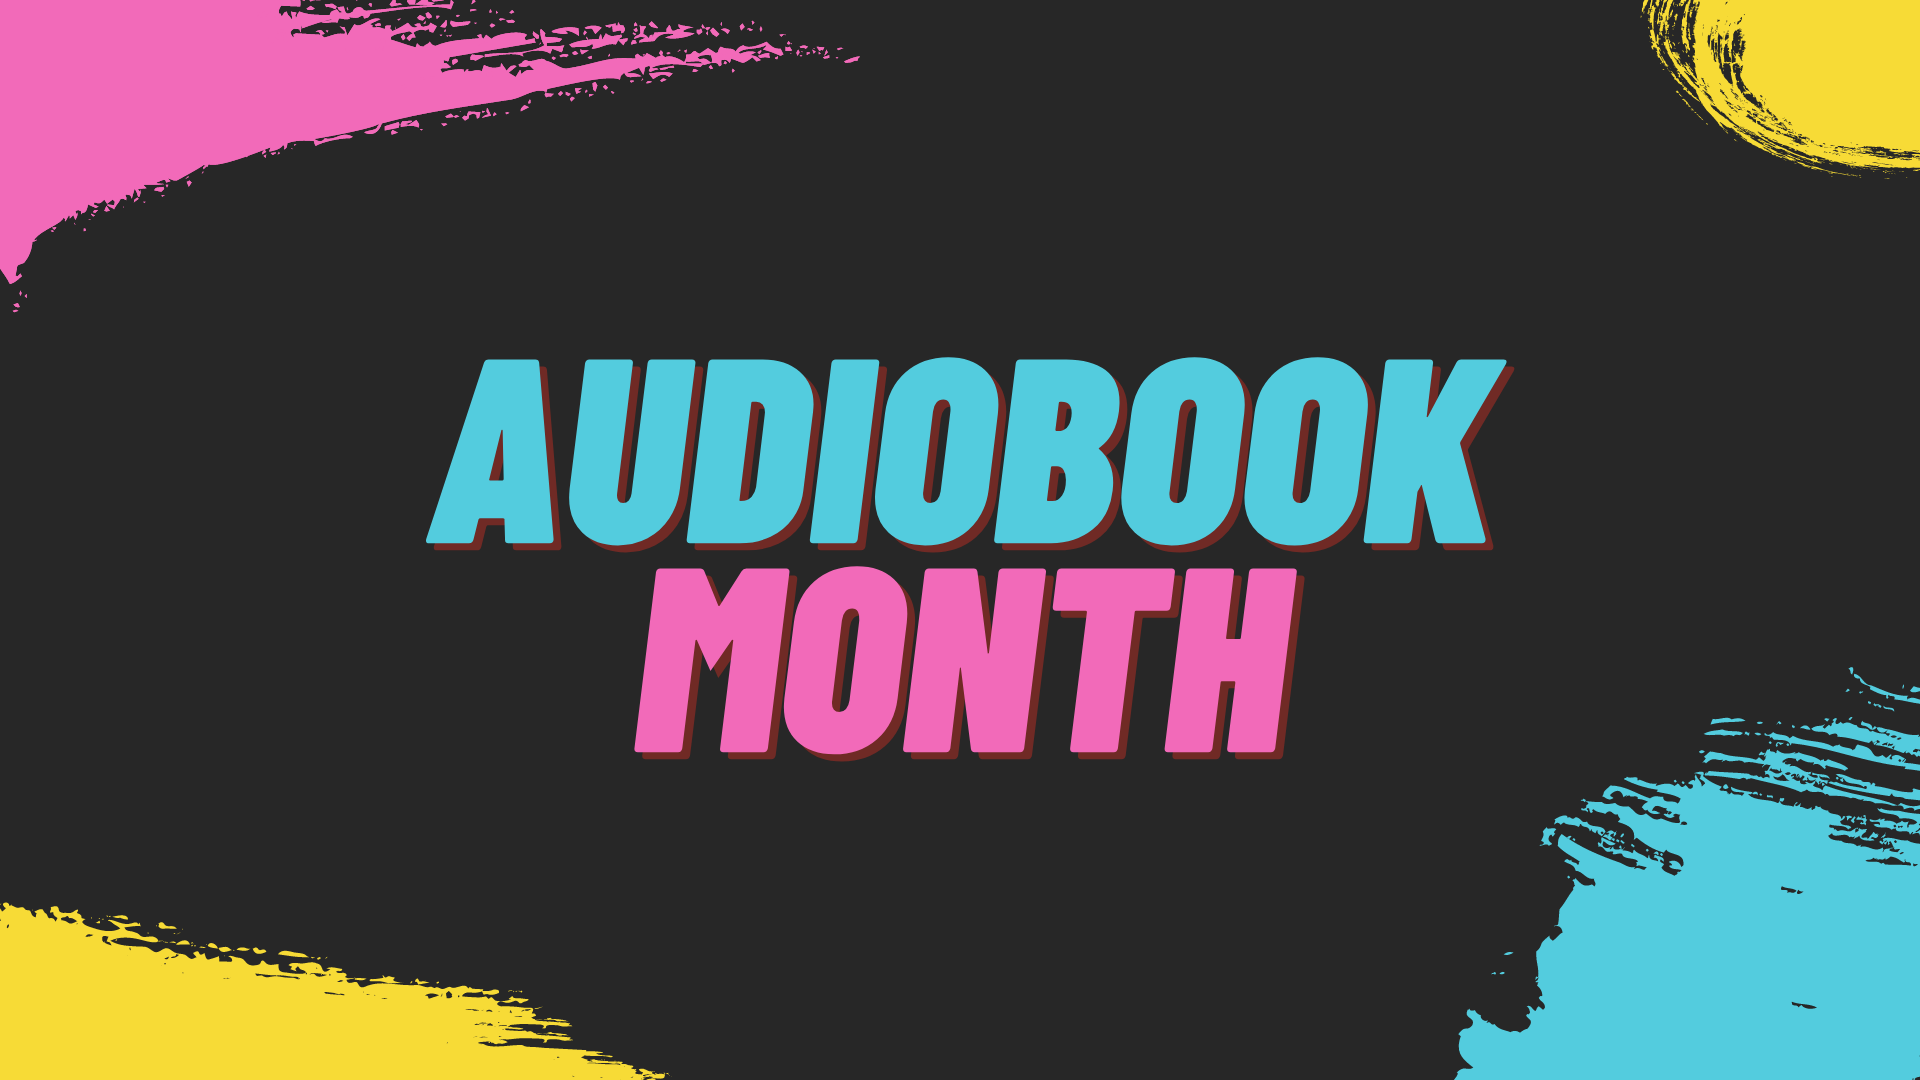 Four Libby audiobook features to enhance your listening experience